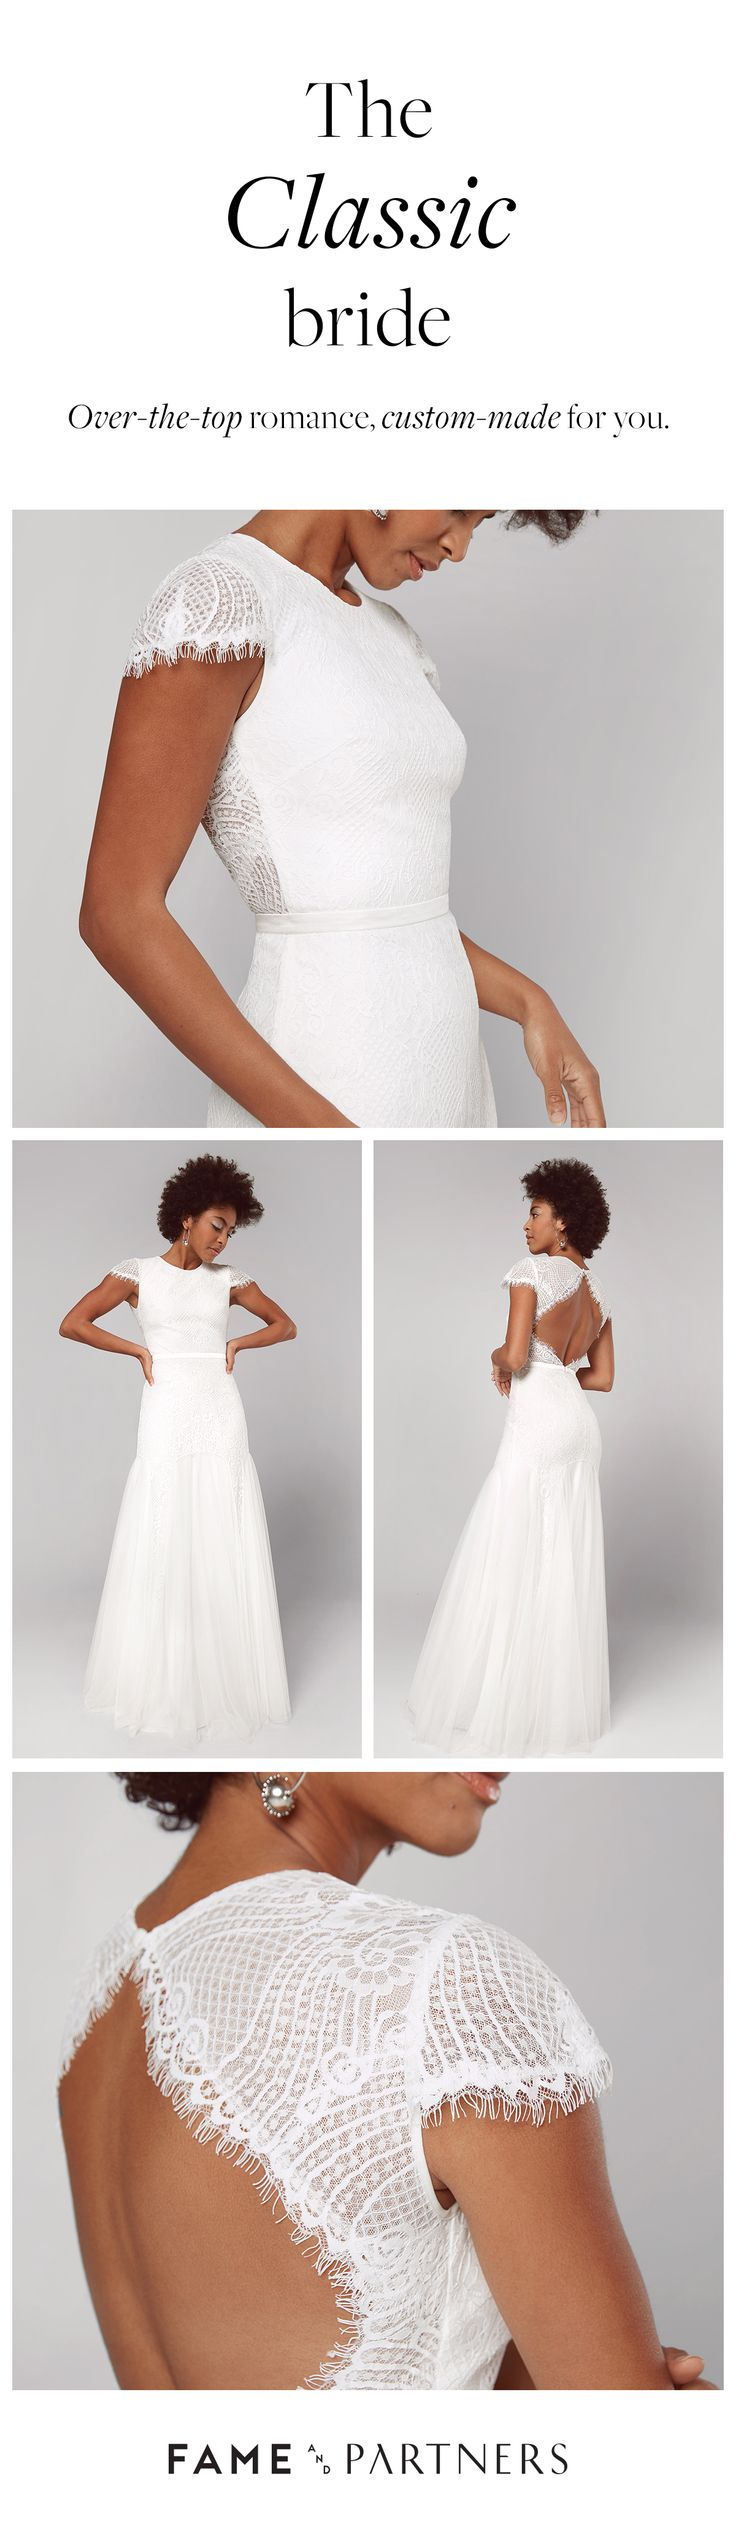 Non-traditional? Go bespoke. Do you on your wedding day in unexpected bridal from The Bespoke Bridal Collection.